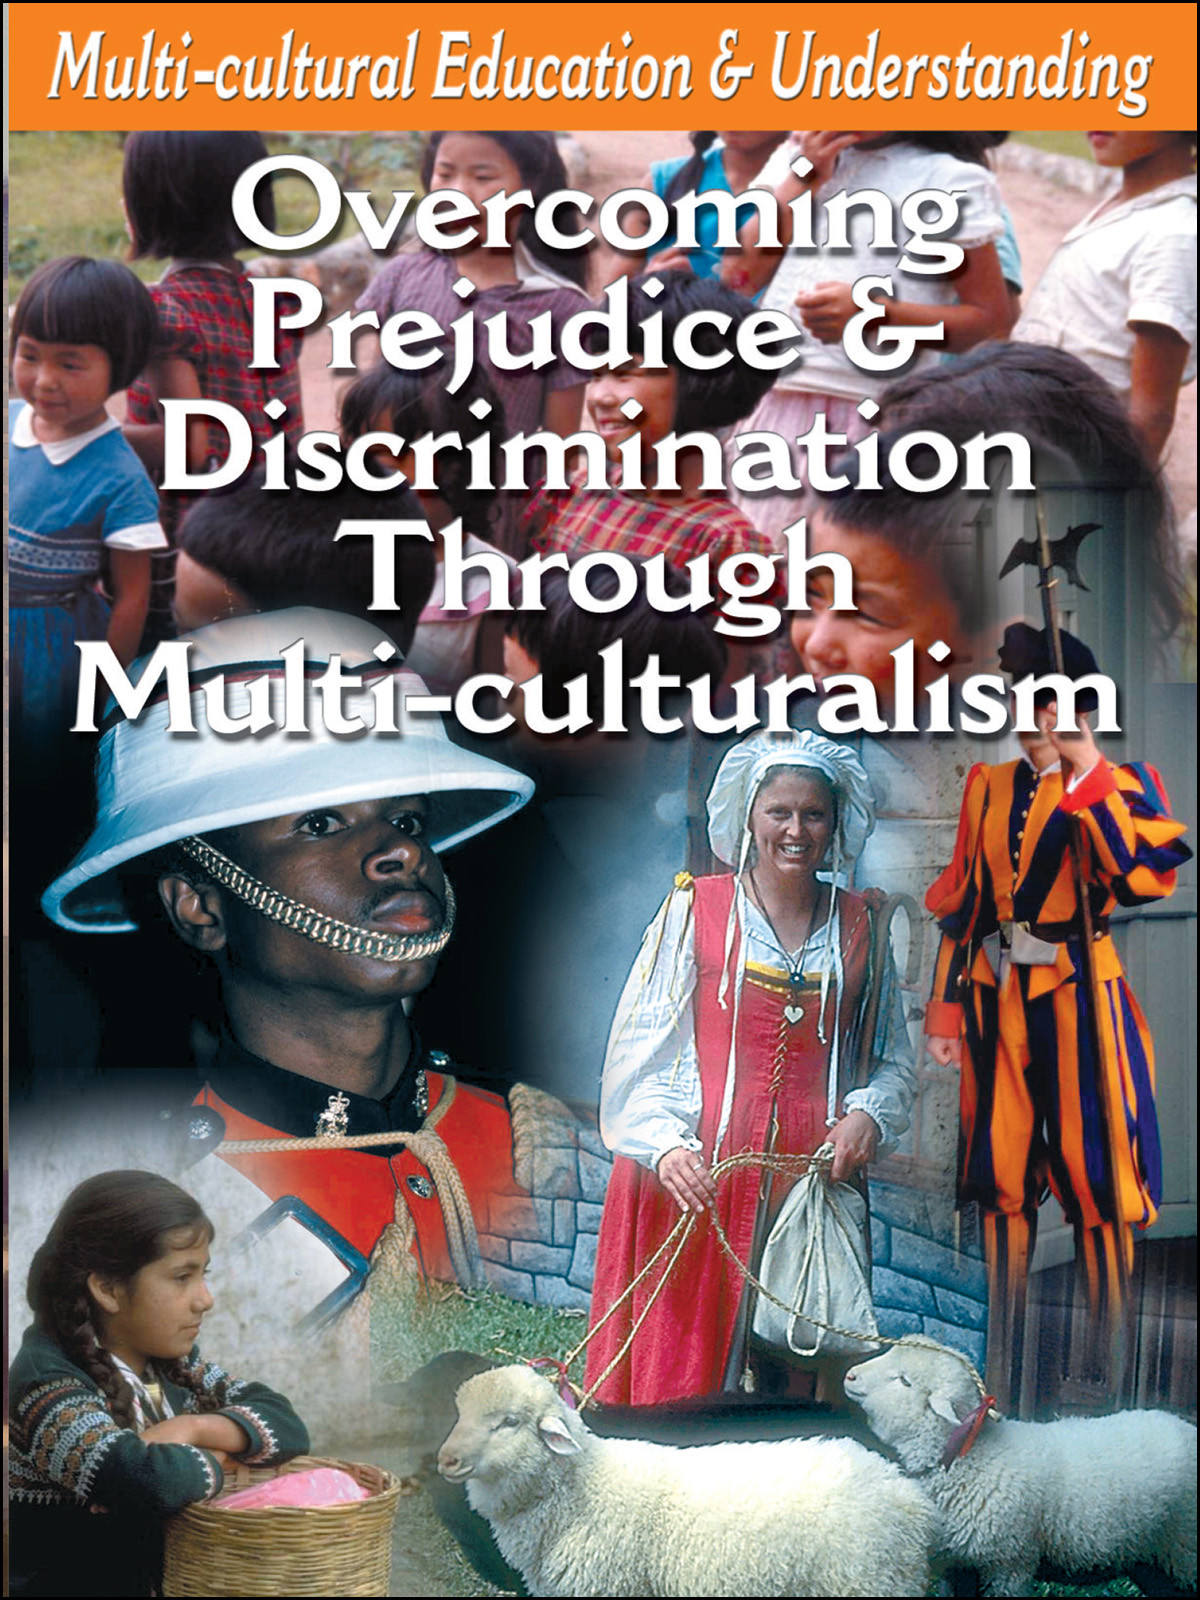 L901 - Overcoming Prejudice & Discrimination